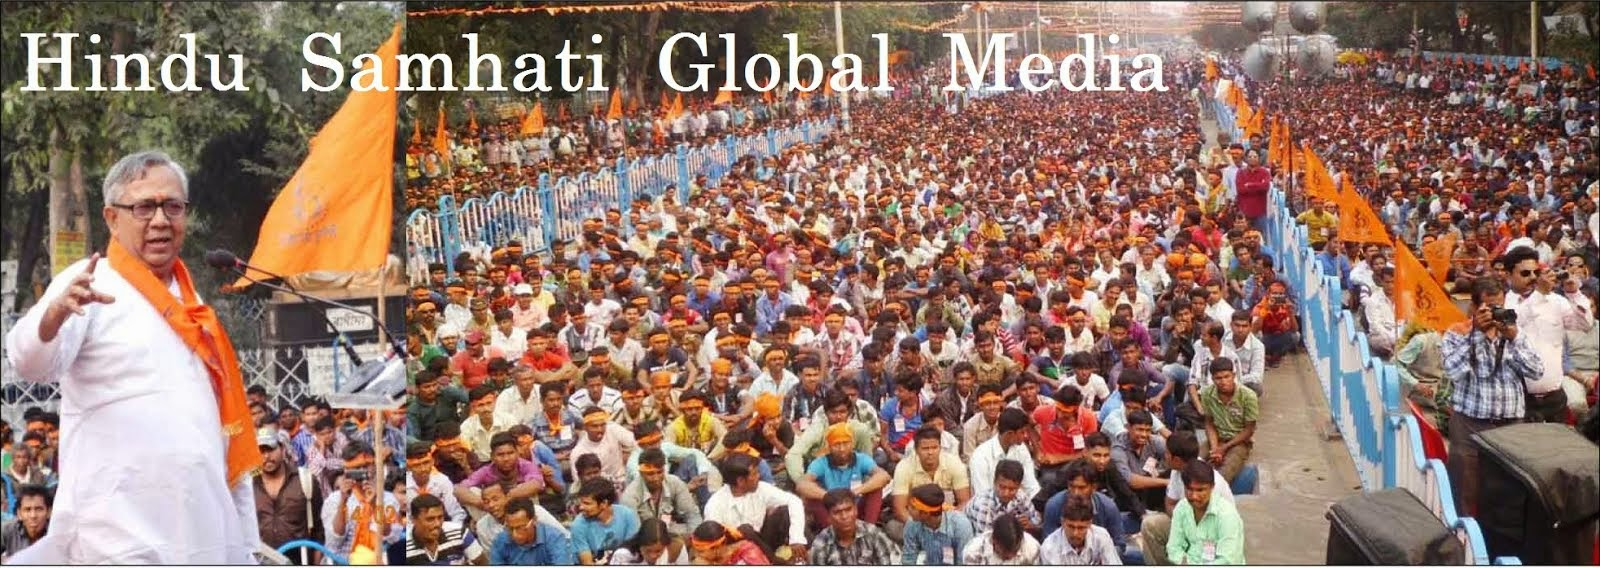 Hindu Samhati Global Media